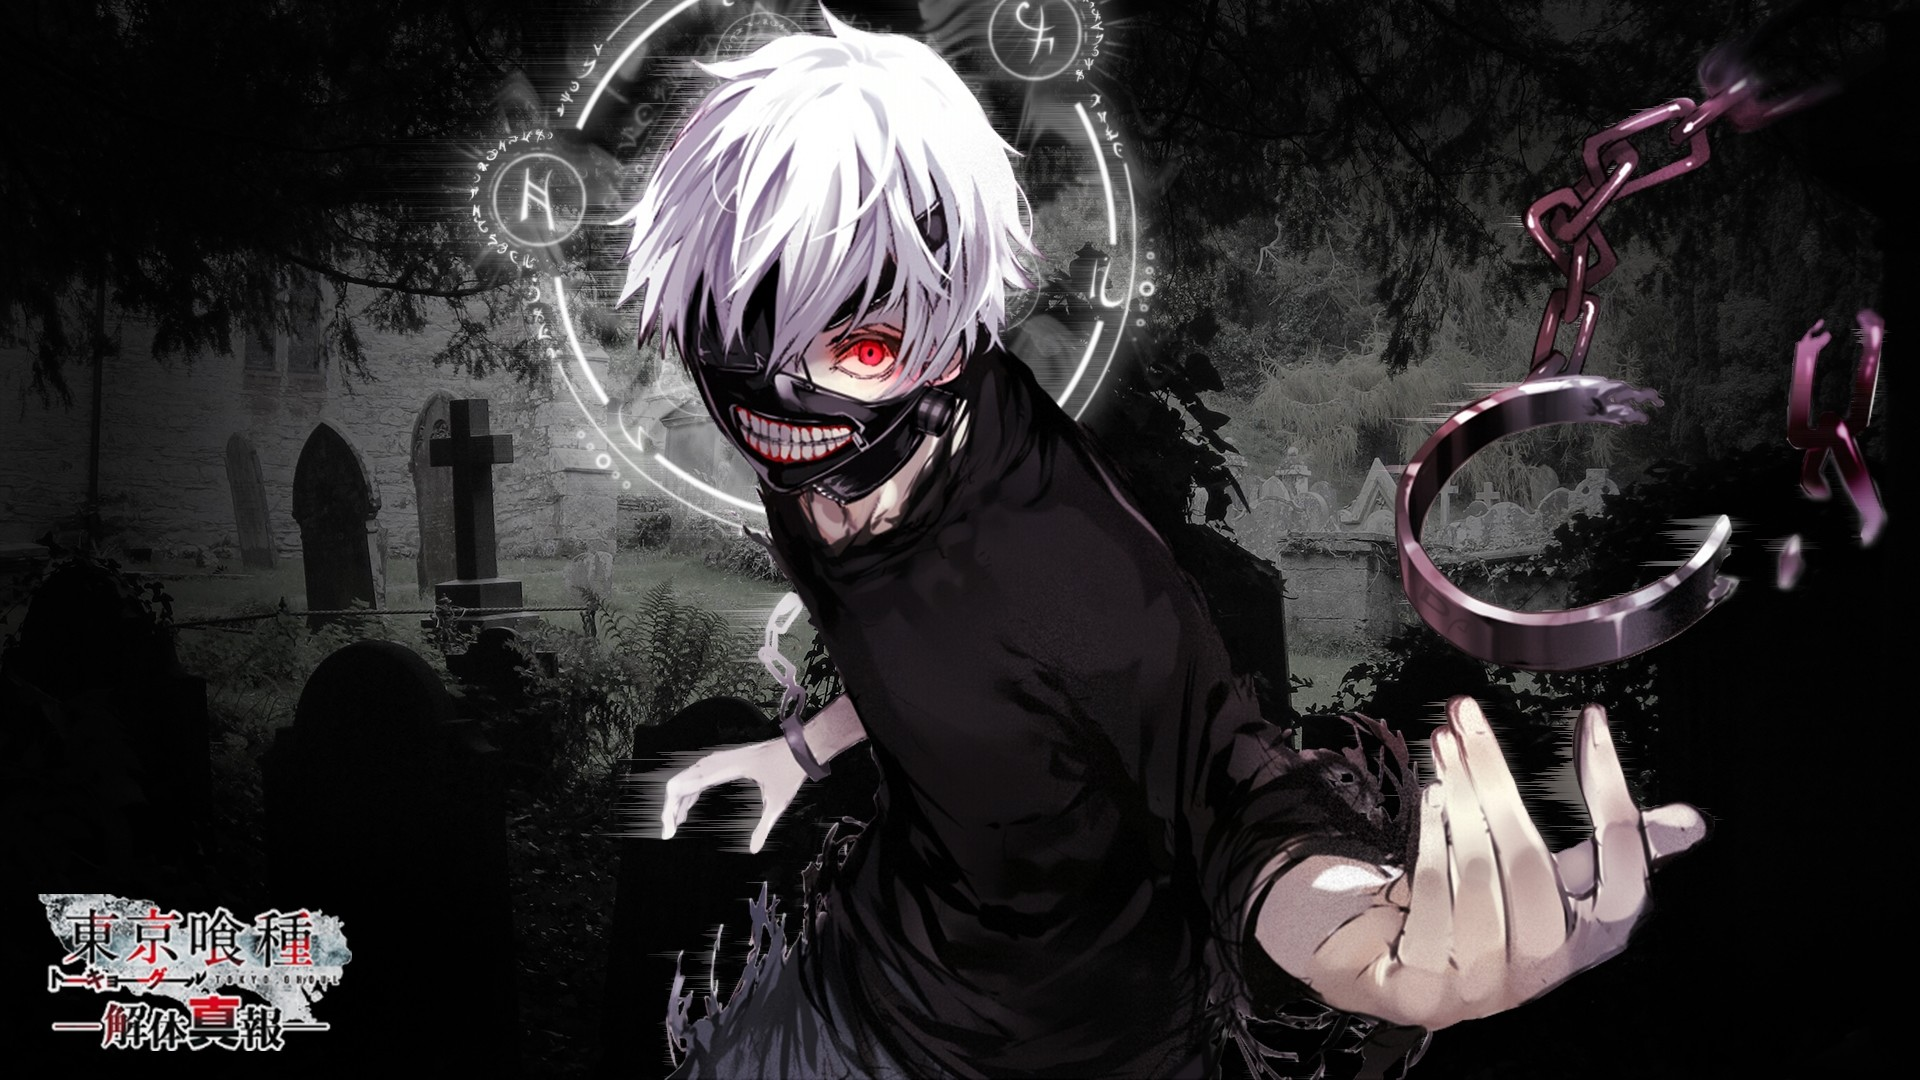 1920x1080 0 Anime Wallpapers HD Group Headphones Wallpaper Free Download